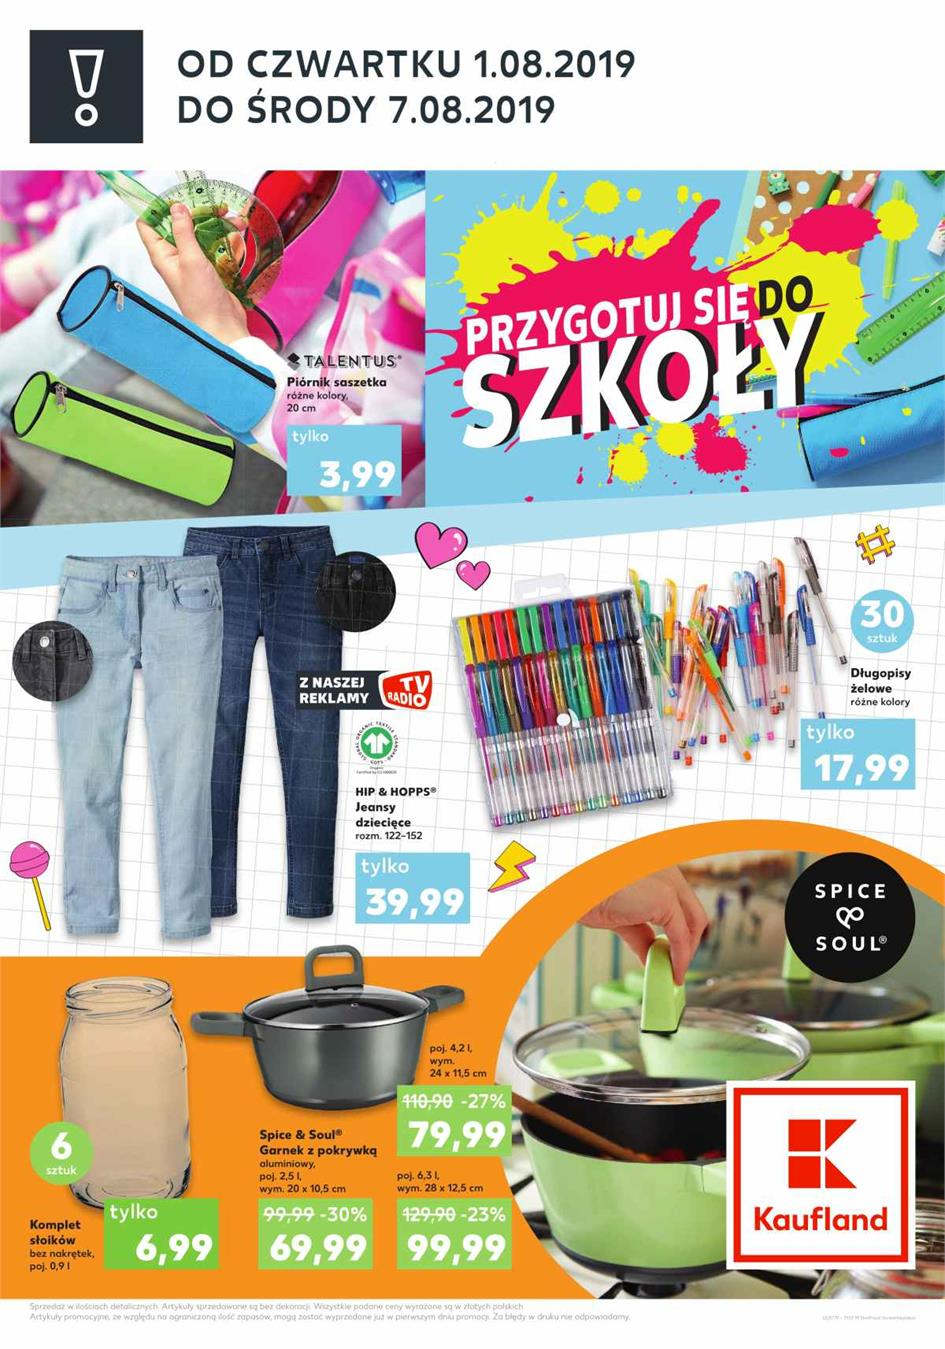 Gazetka Kaufland Polska Markety Sp. z o.o nr 2 od 2019-08-01 do 2019-08-07